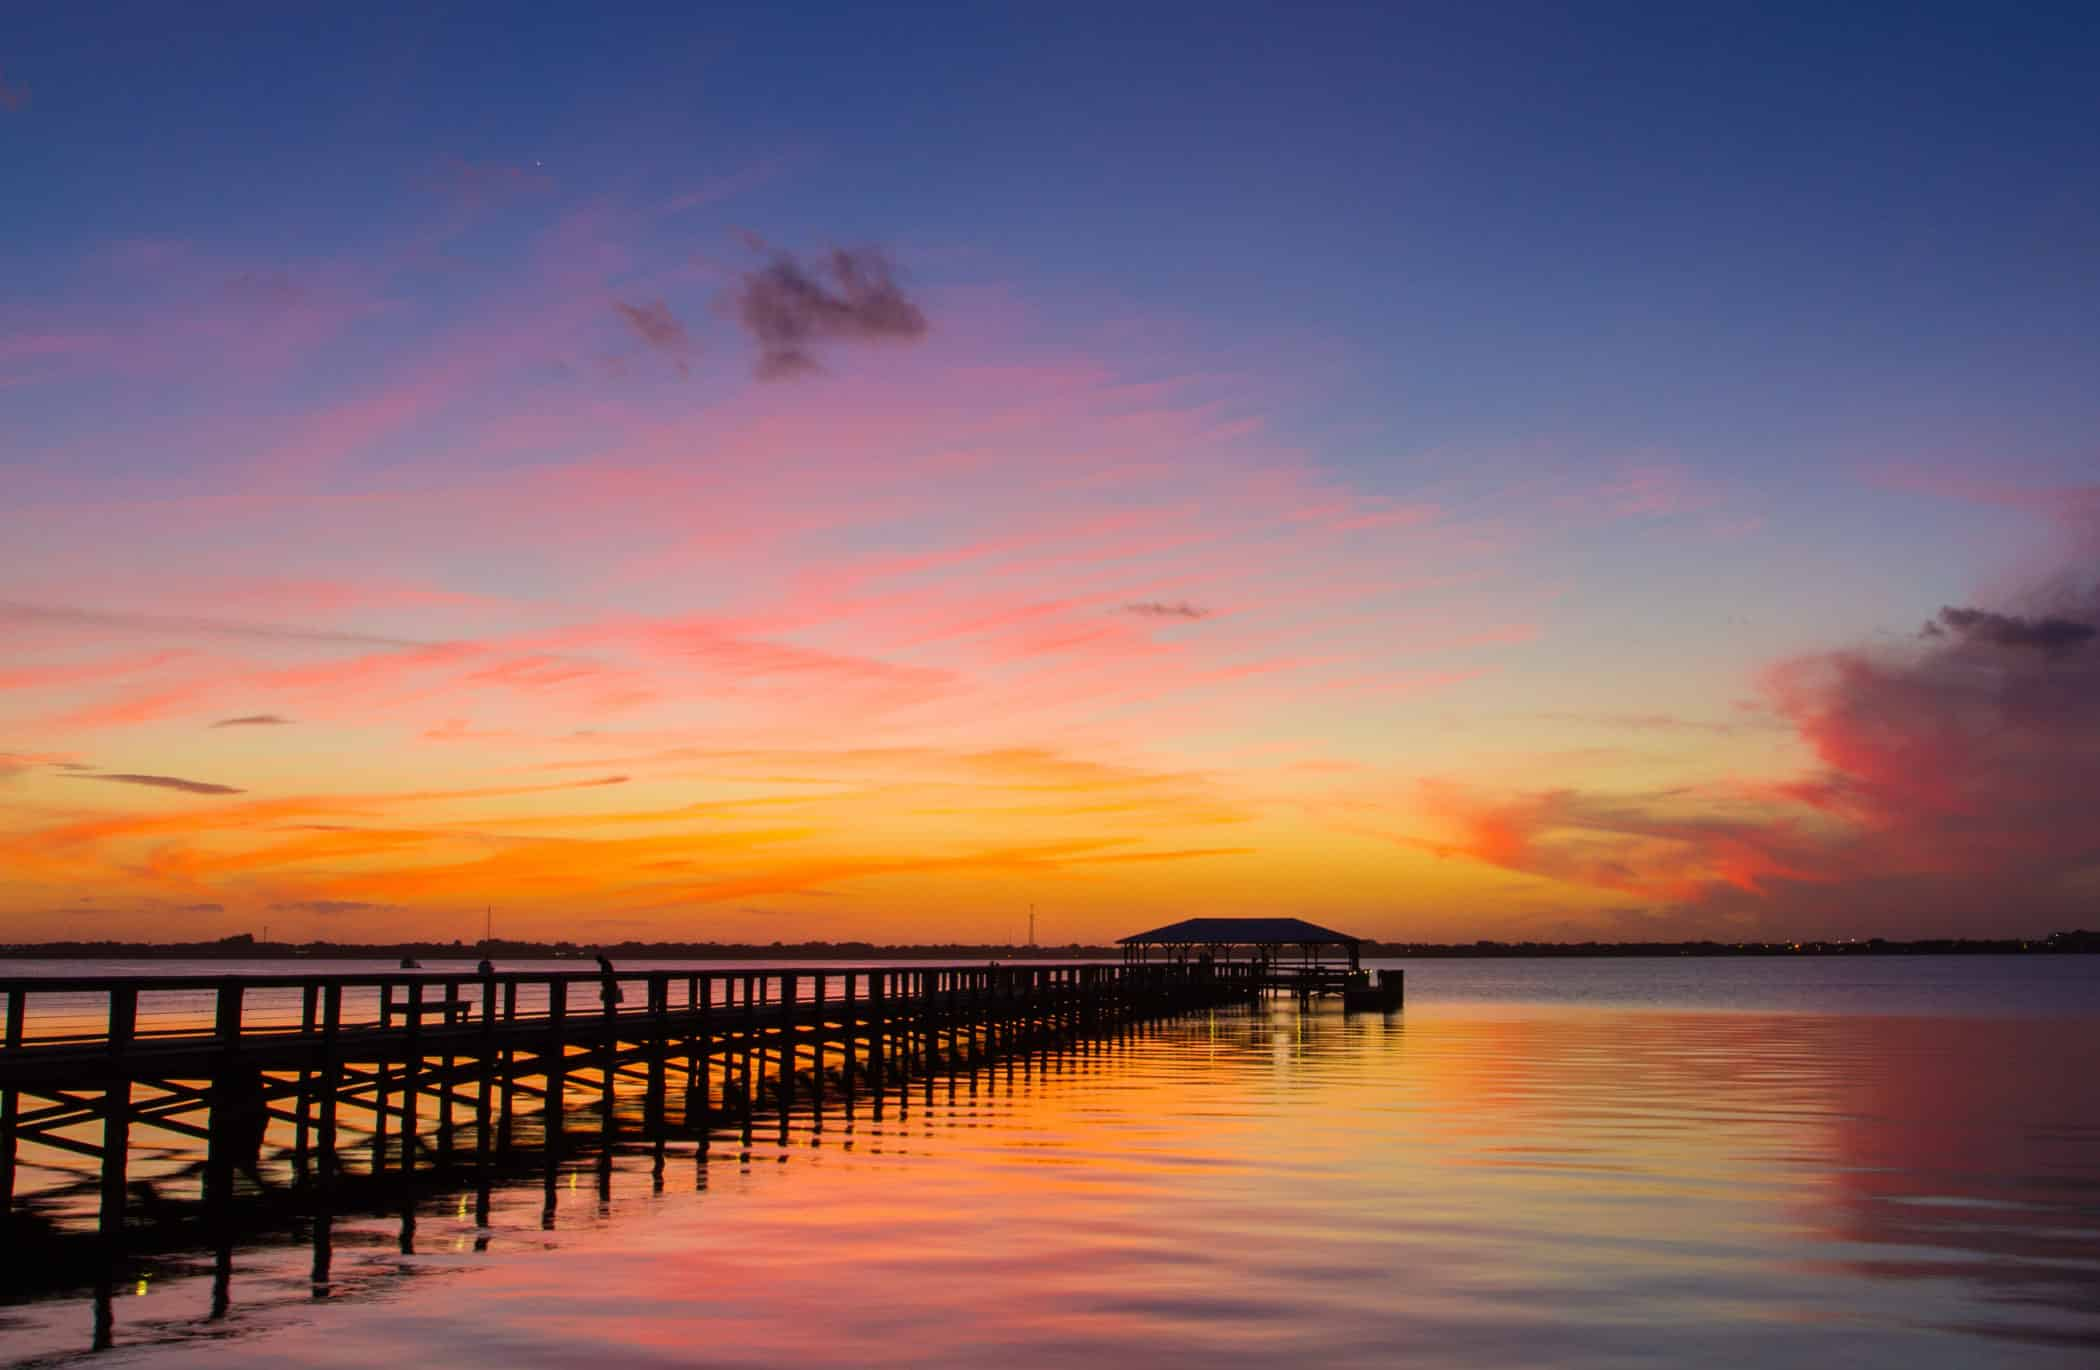 Sunset from Melbourne Beach, Florida - January 31, 2015